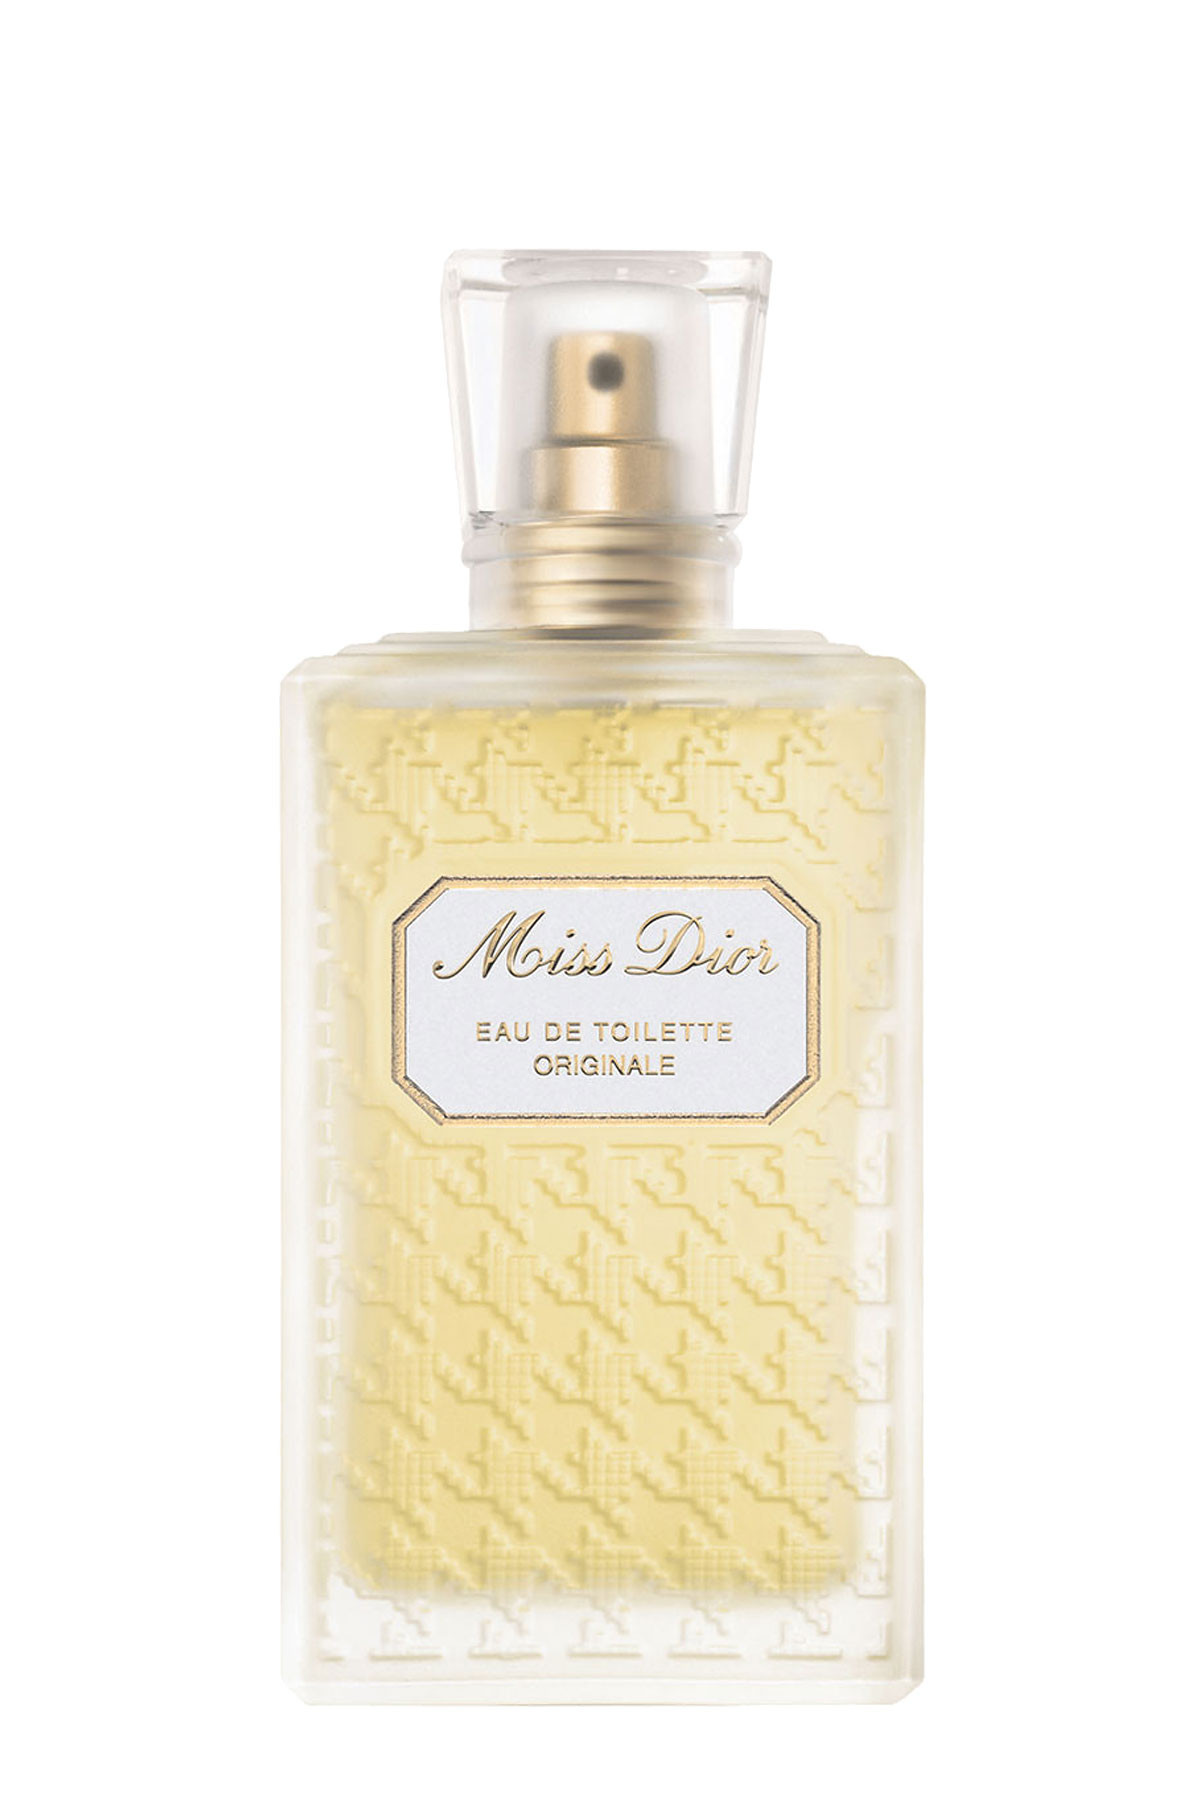 eau de toilette christian miss eau de toilette originale christian miss eau